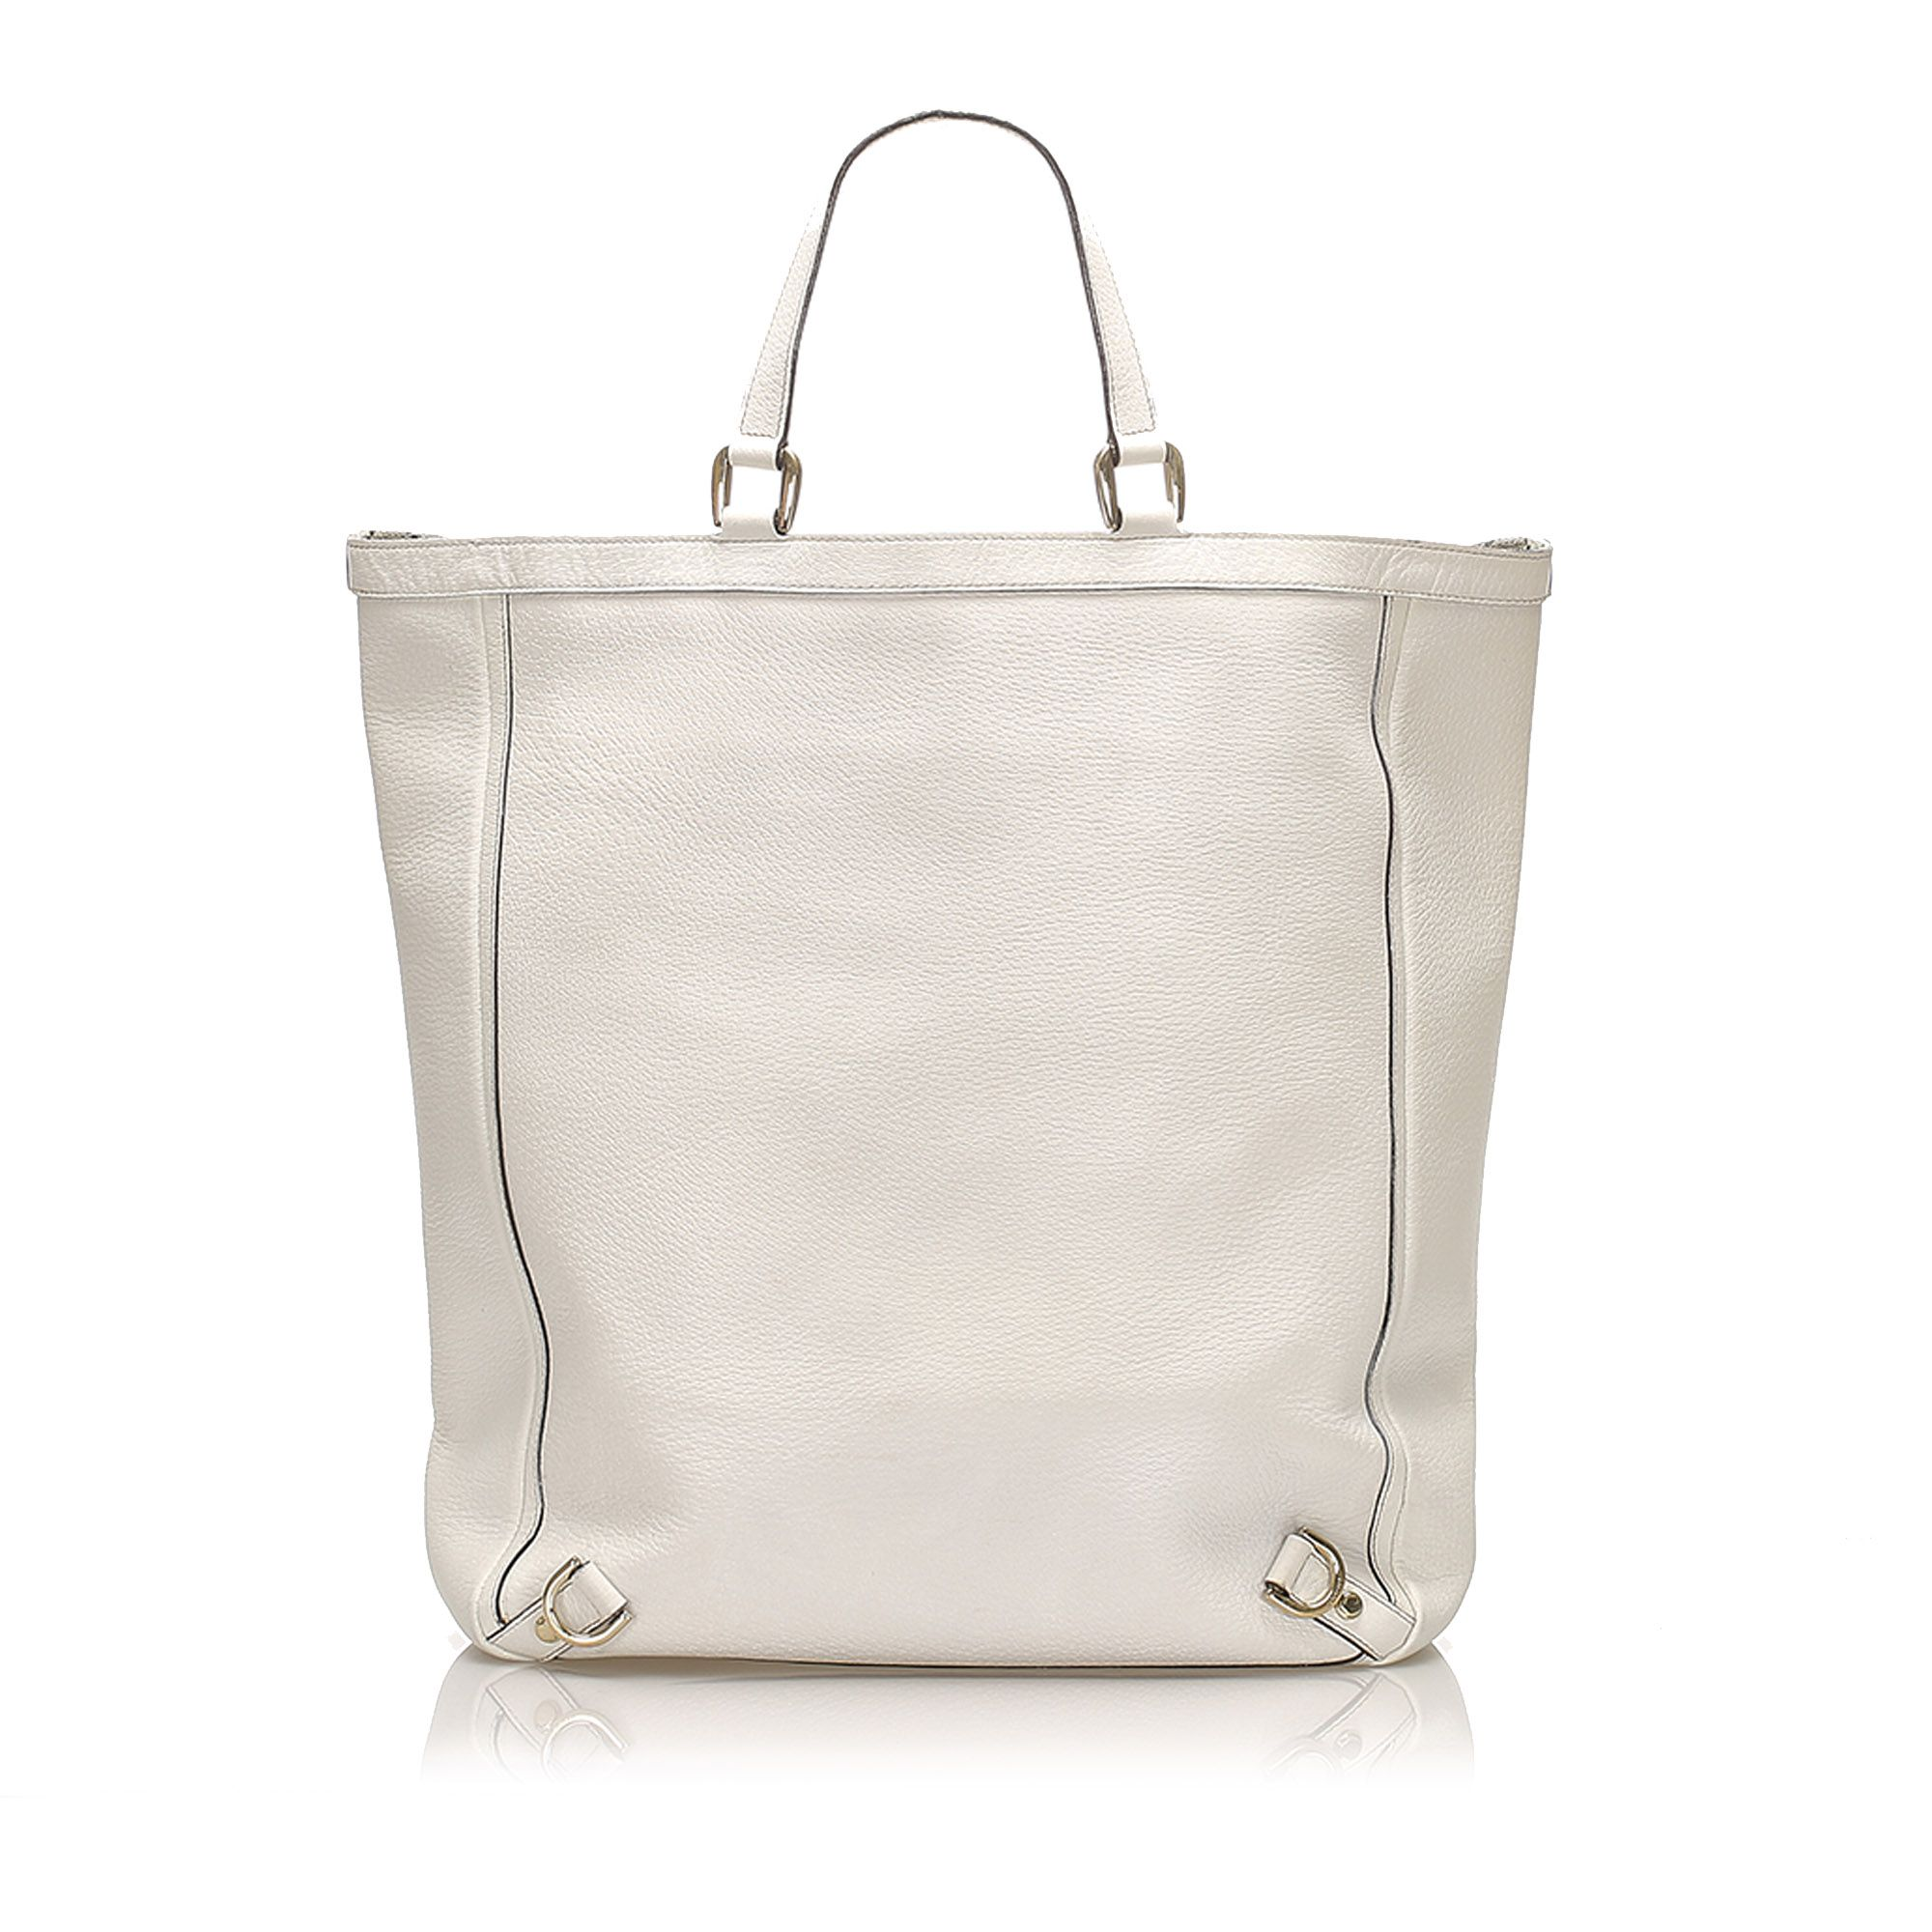 Vintage Gucci Abbey D-Ring Leather Tote Bag White